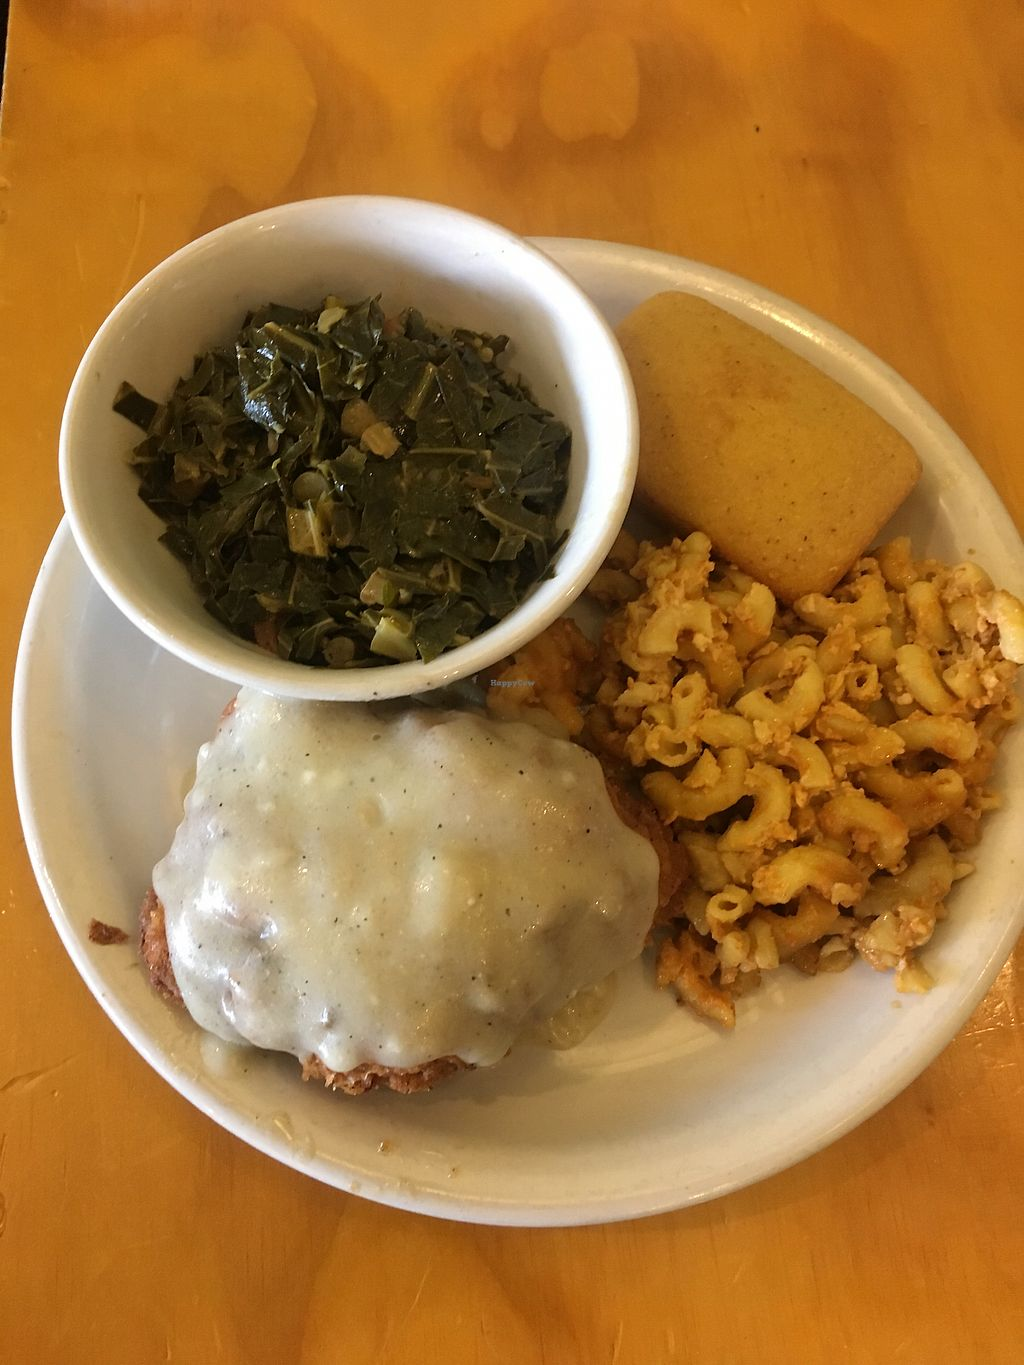 """Photo of Go Vegetarian Restaurant  by <a href=""""/members/profile/CColors"""">CColors</a> <br/>Yum! Smothered fried chicken with gravy and mac n cheese, collard greens and cornbread  <br/> January 30, 2018  - <a href='/contact/abuse/image/52205/352934'>Report</a>"""